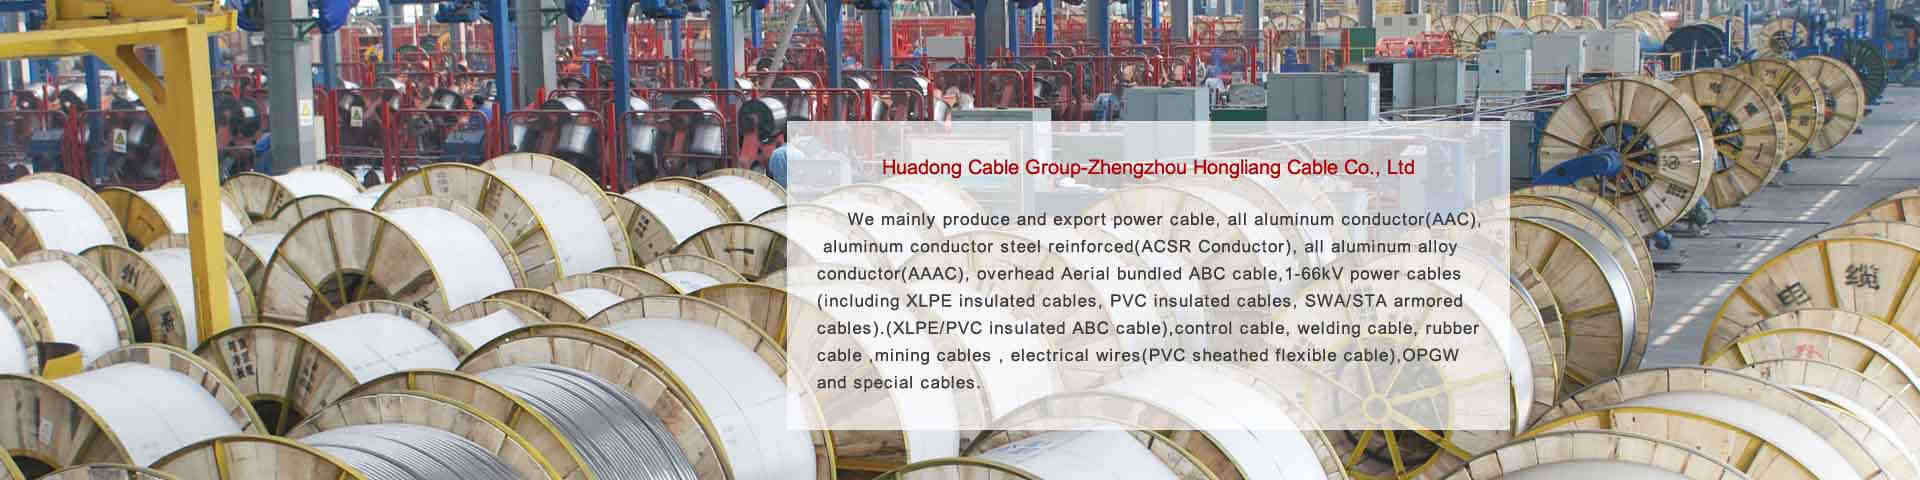 regular aerial bundled cable manufacturers